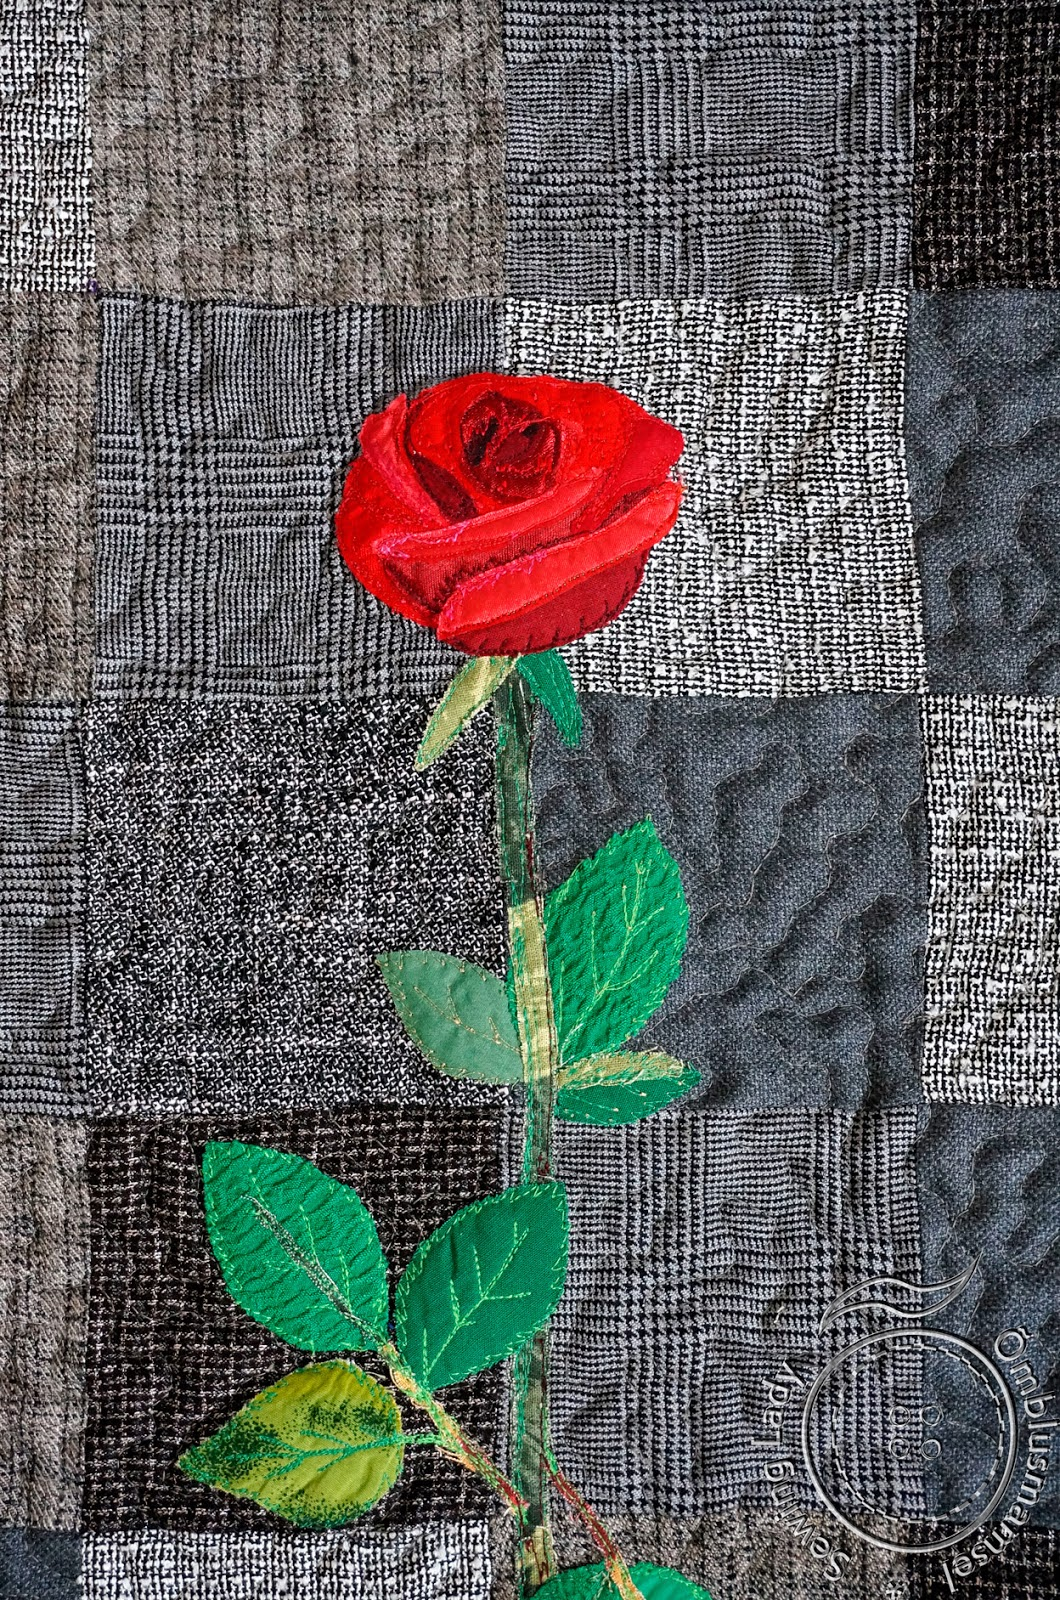 art quilting rose, appliqued flower